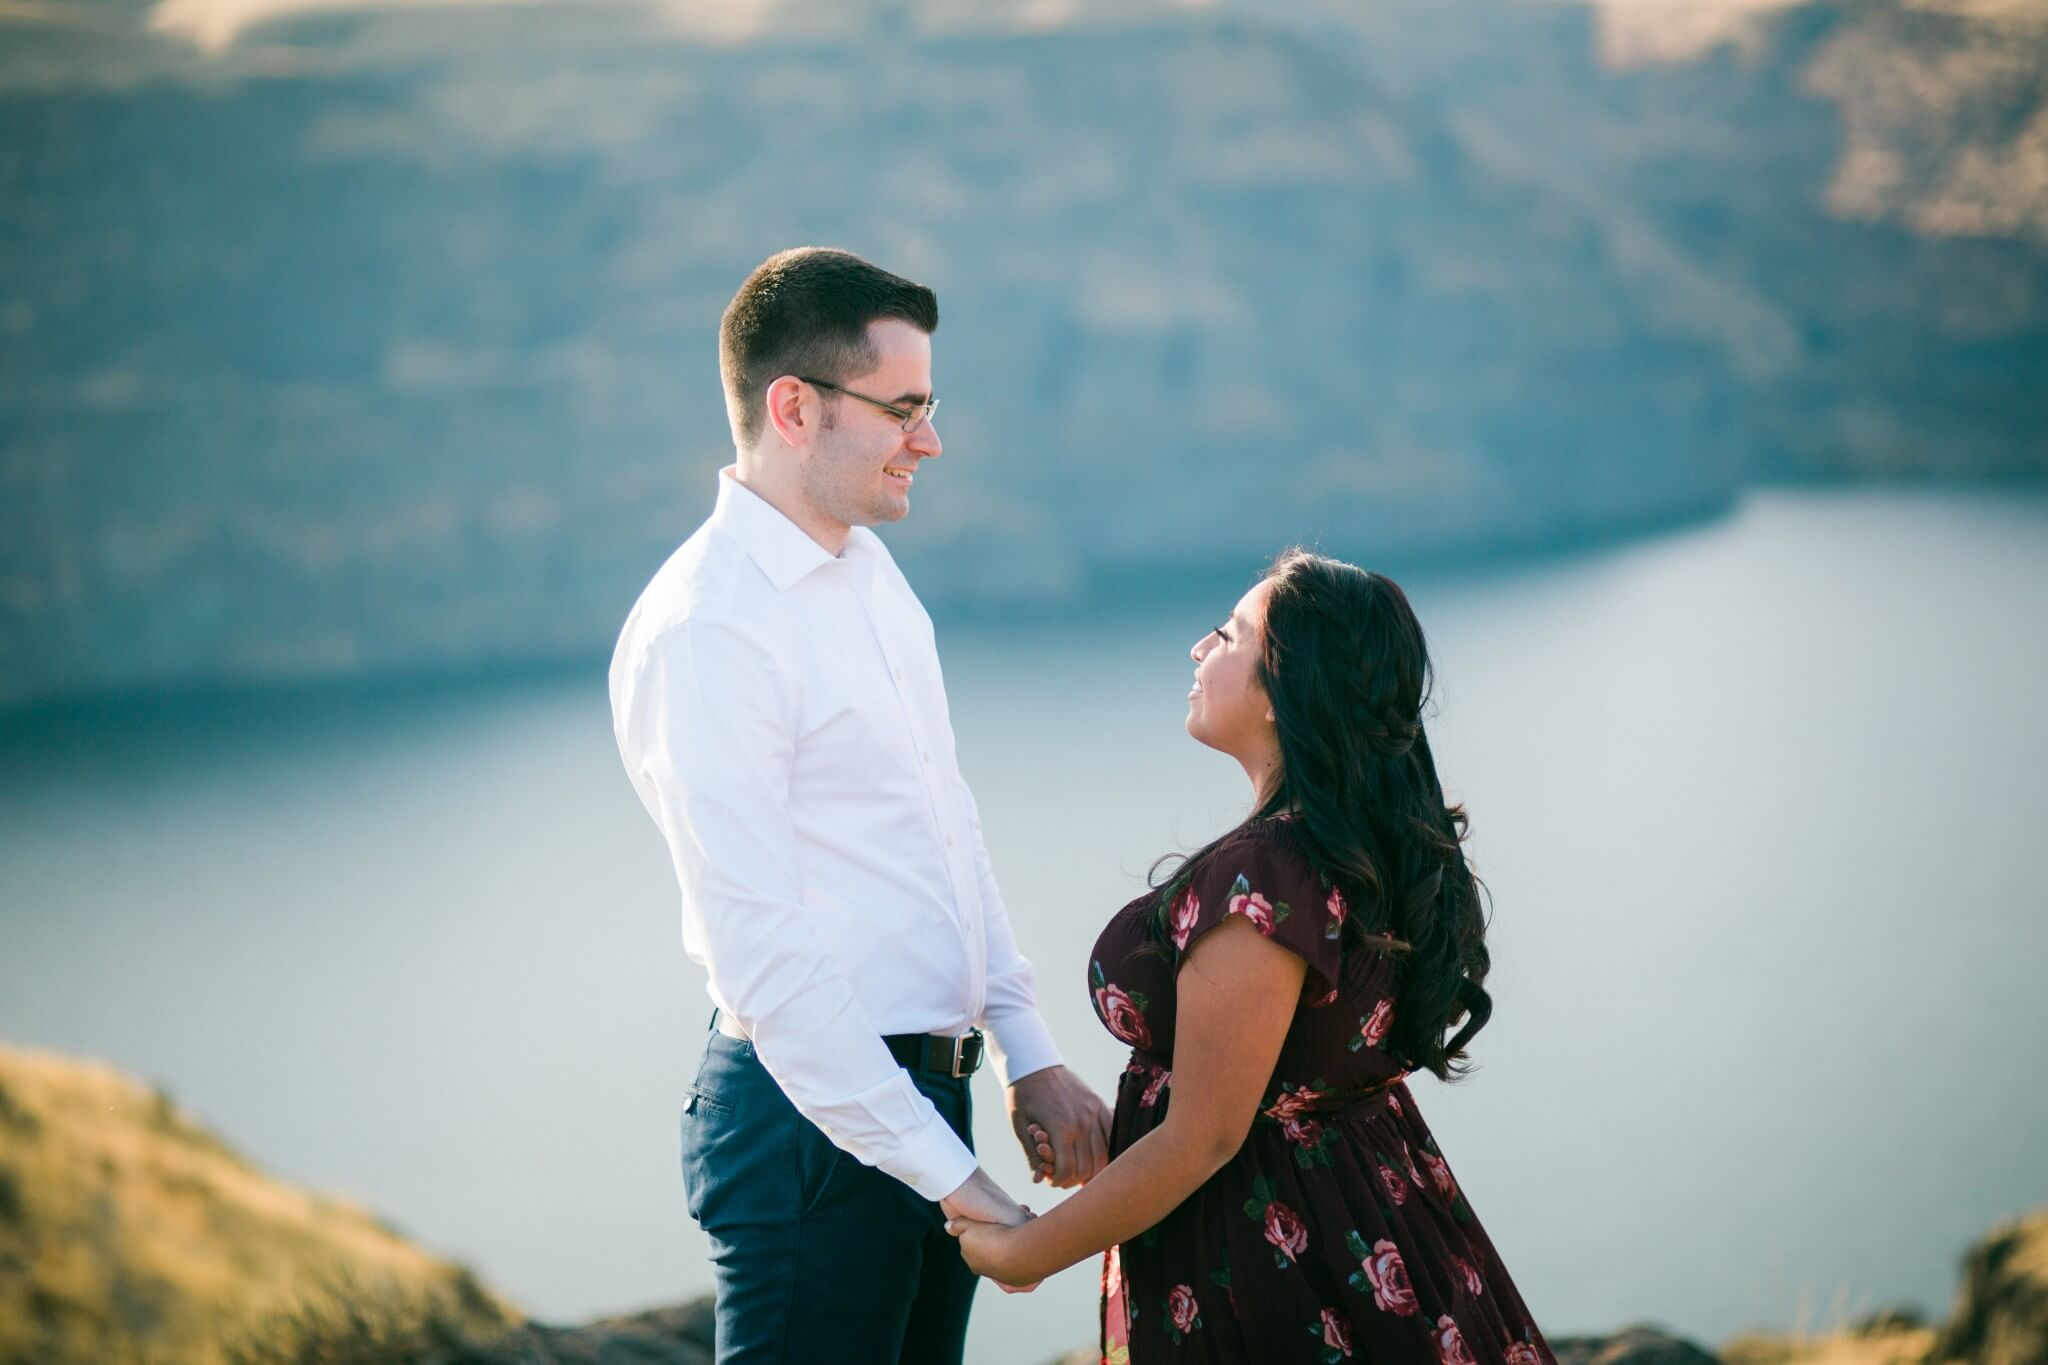 Lesly & Michael Vantage Engagement by Bill Weisgerber Spokane Photographer (8 of 71).jpg